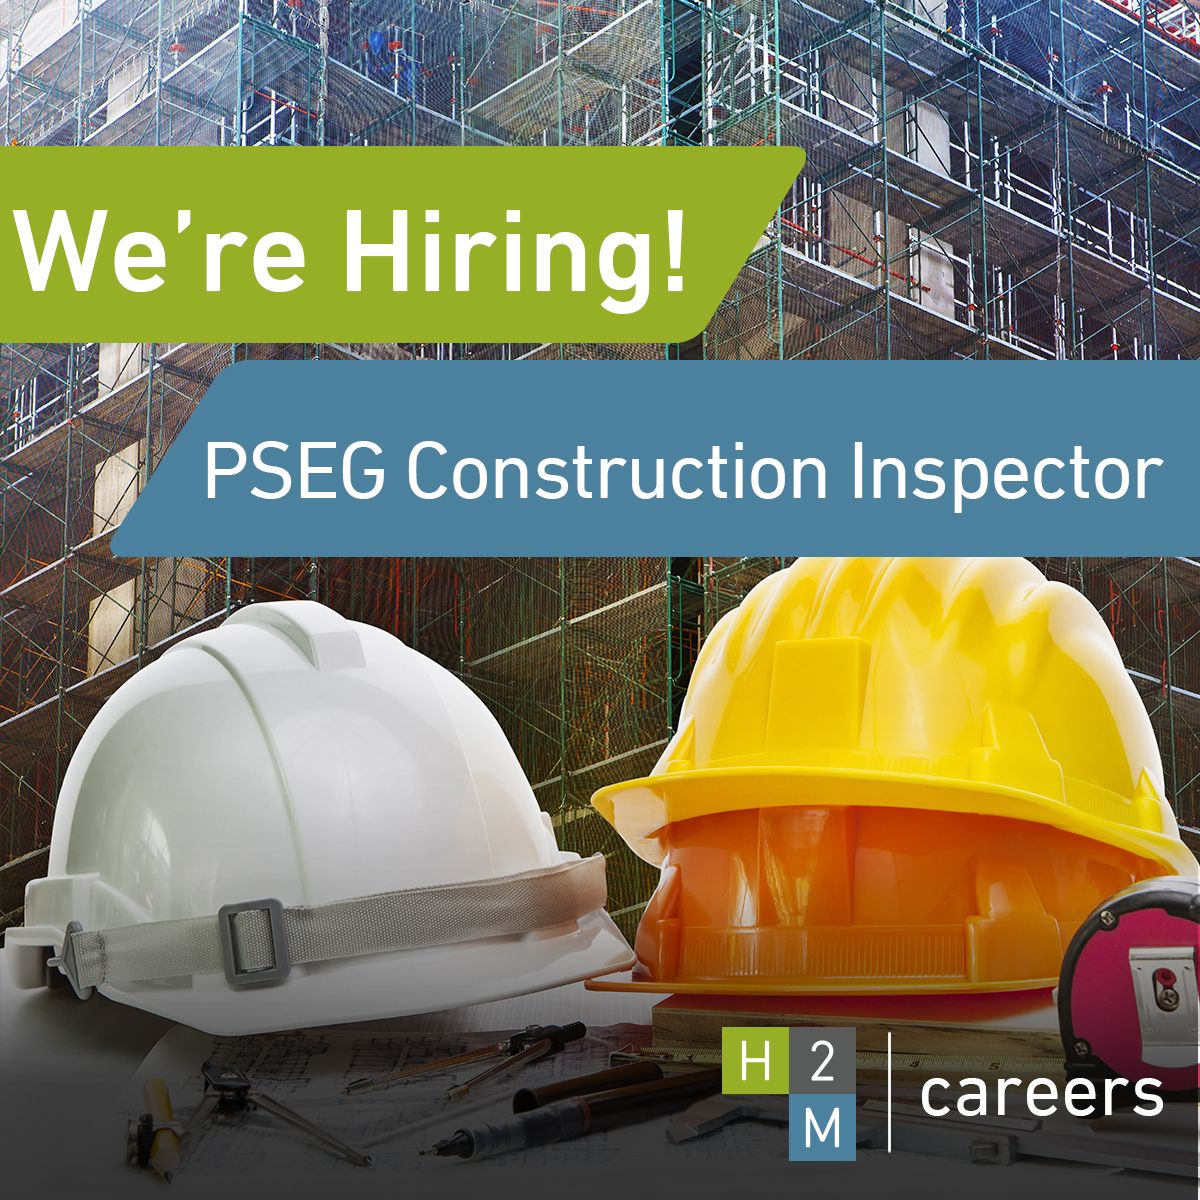 WeRe Hiring A Pseg Construction Inspector With  Years Of